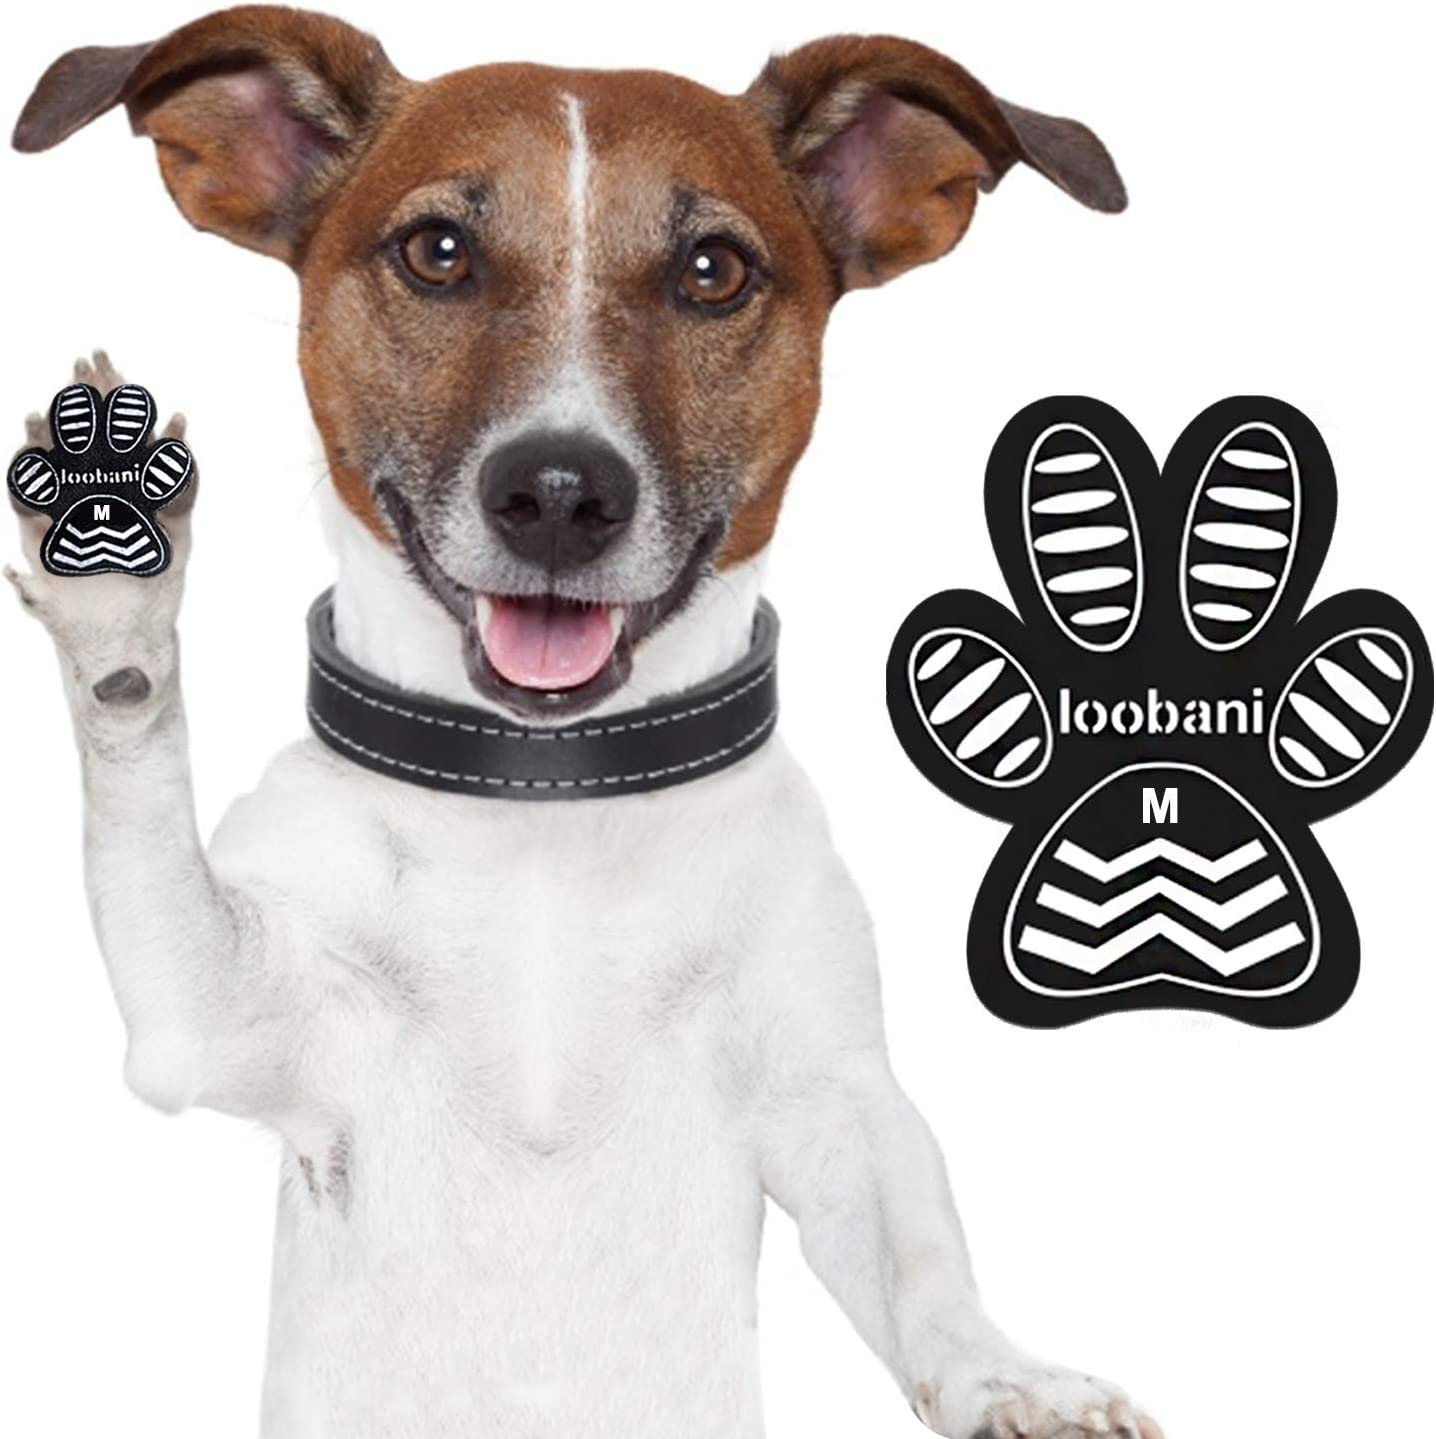 LOOBANI Dog Grip Pad Paw Protector Anti-Slip Traction Pads from Slipping on Hardwood Floors, Protection for Injuries and Brace for Weak Paws(6 Sets 24 Pads-M)